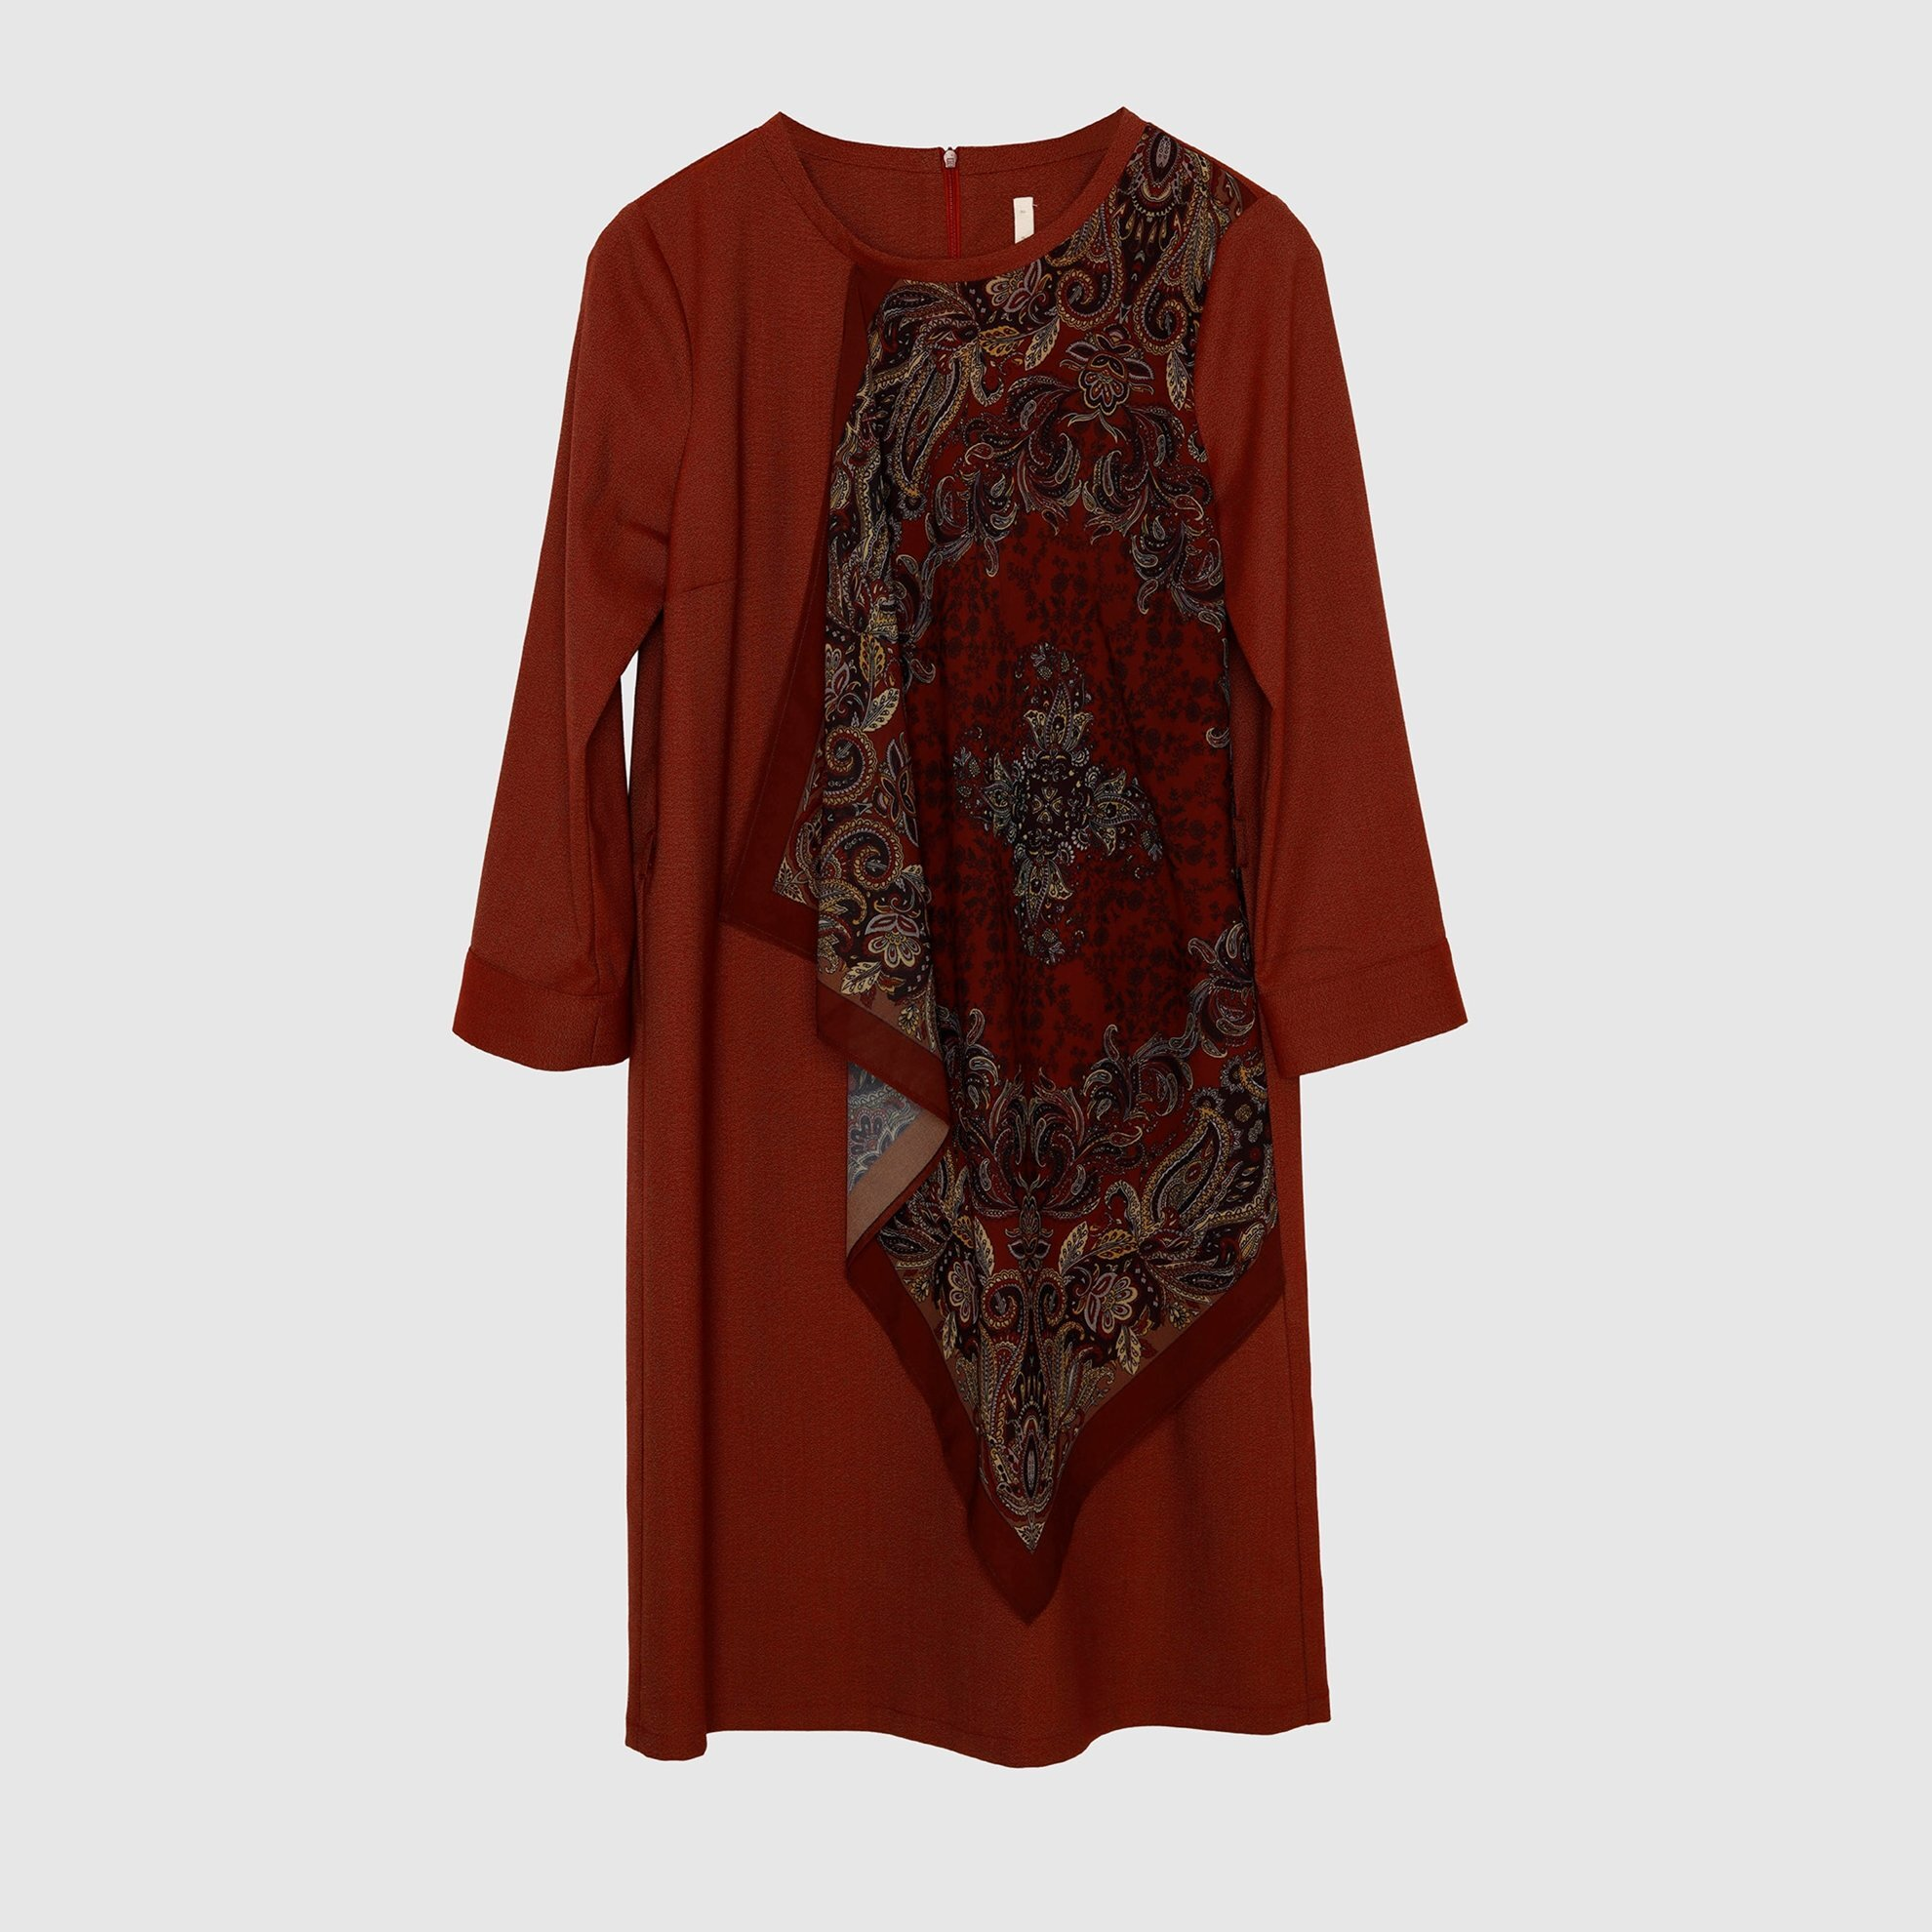 Shawl Detail Dress